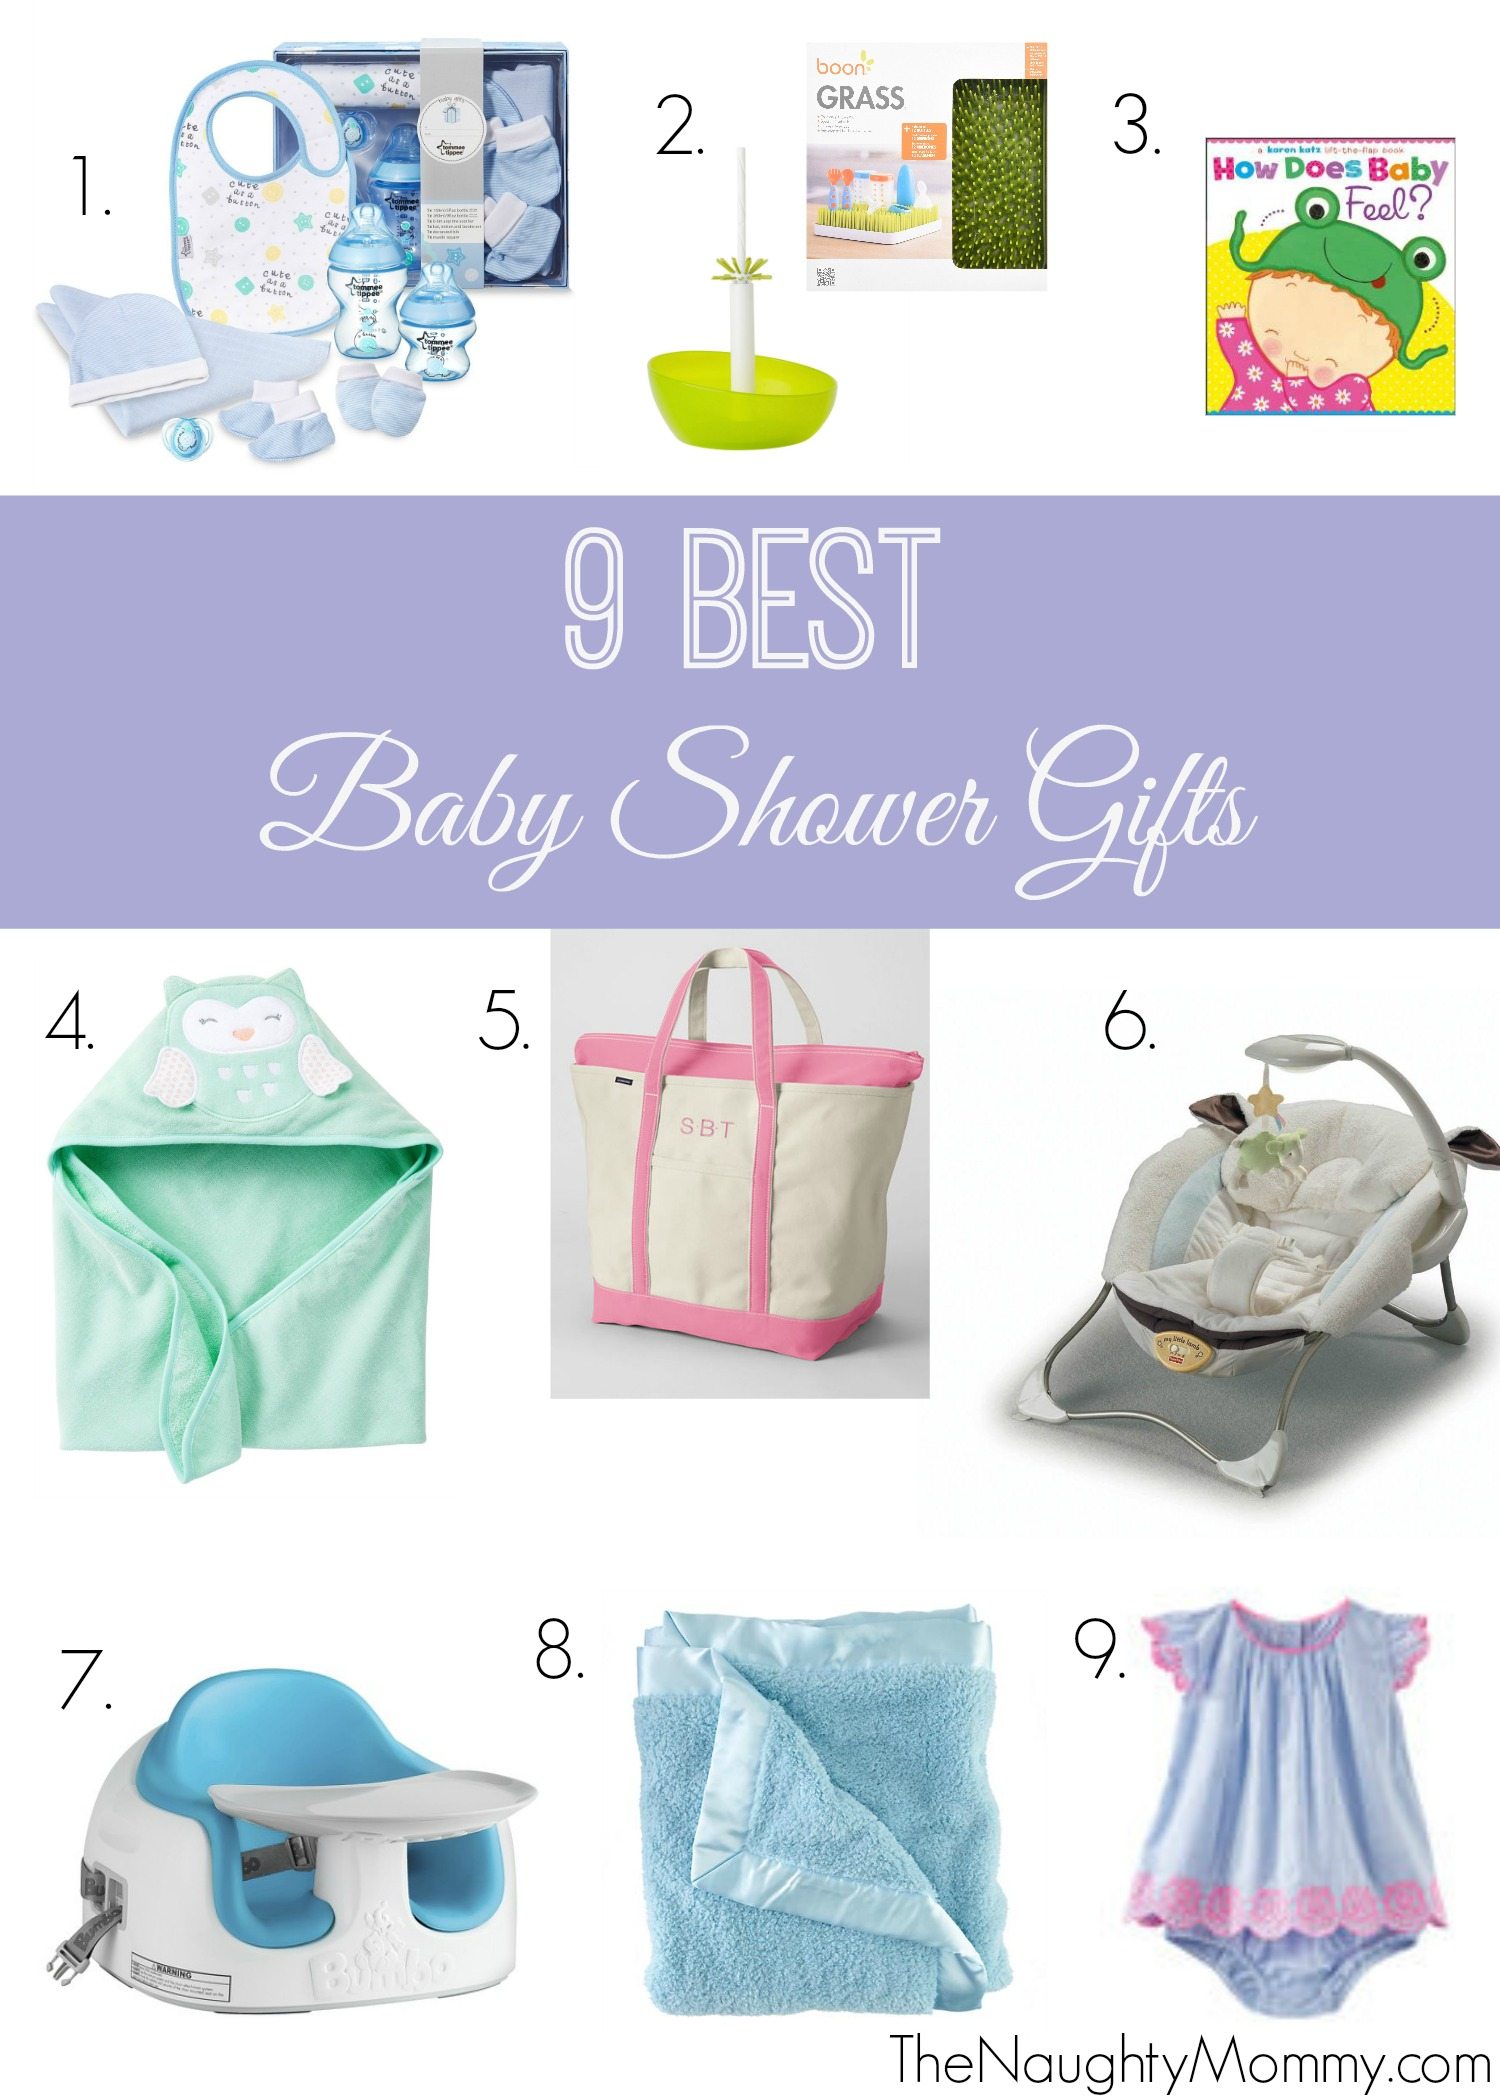 9 Best Baby Shower Gifts - The Naughty Mommy